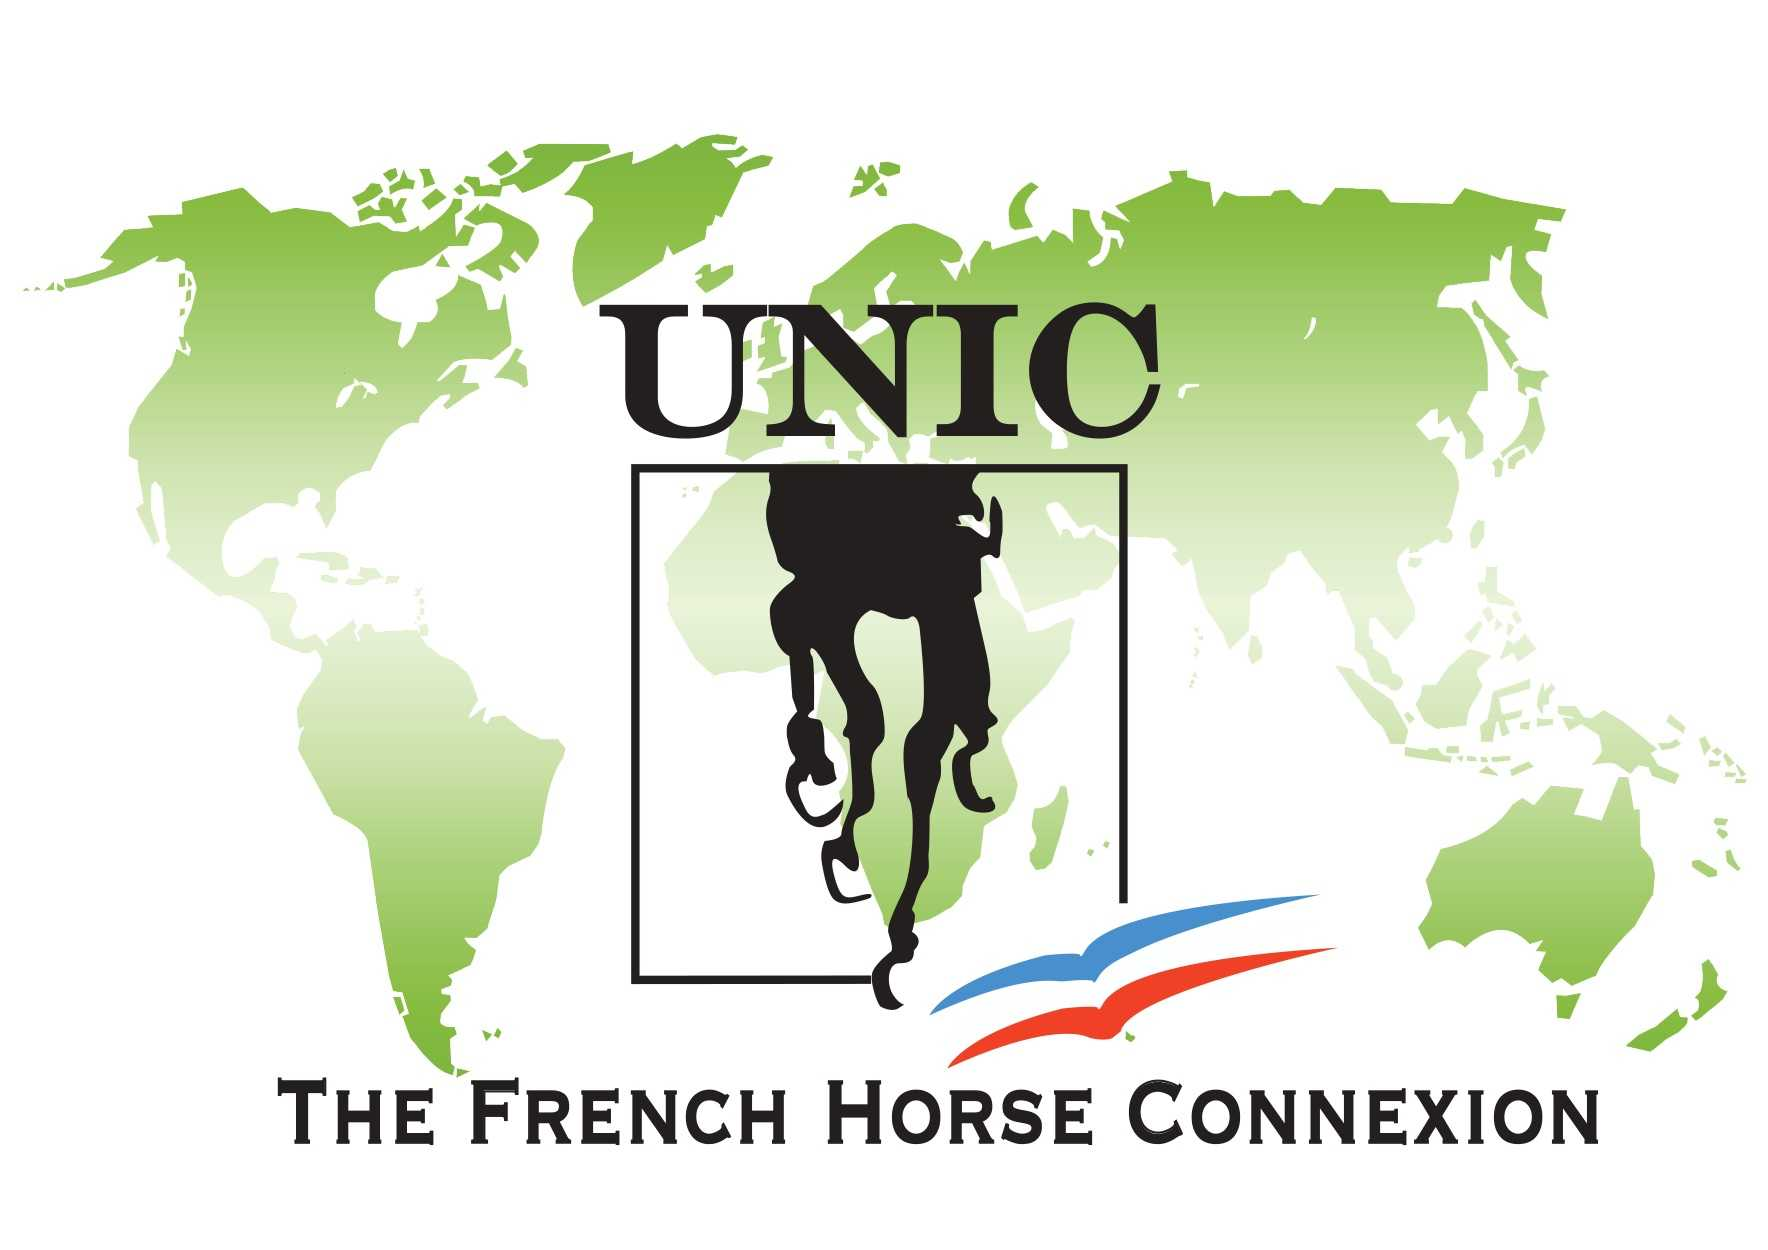 Union Nationale Interprofessionnelle du Cheval